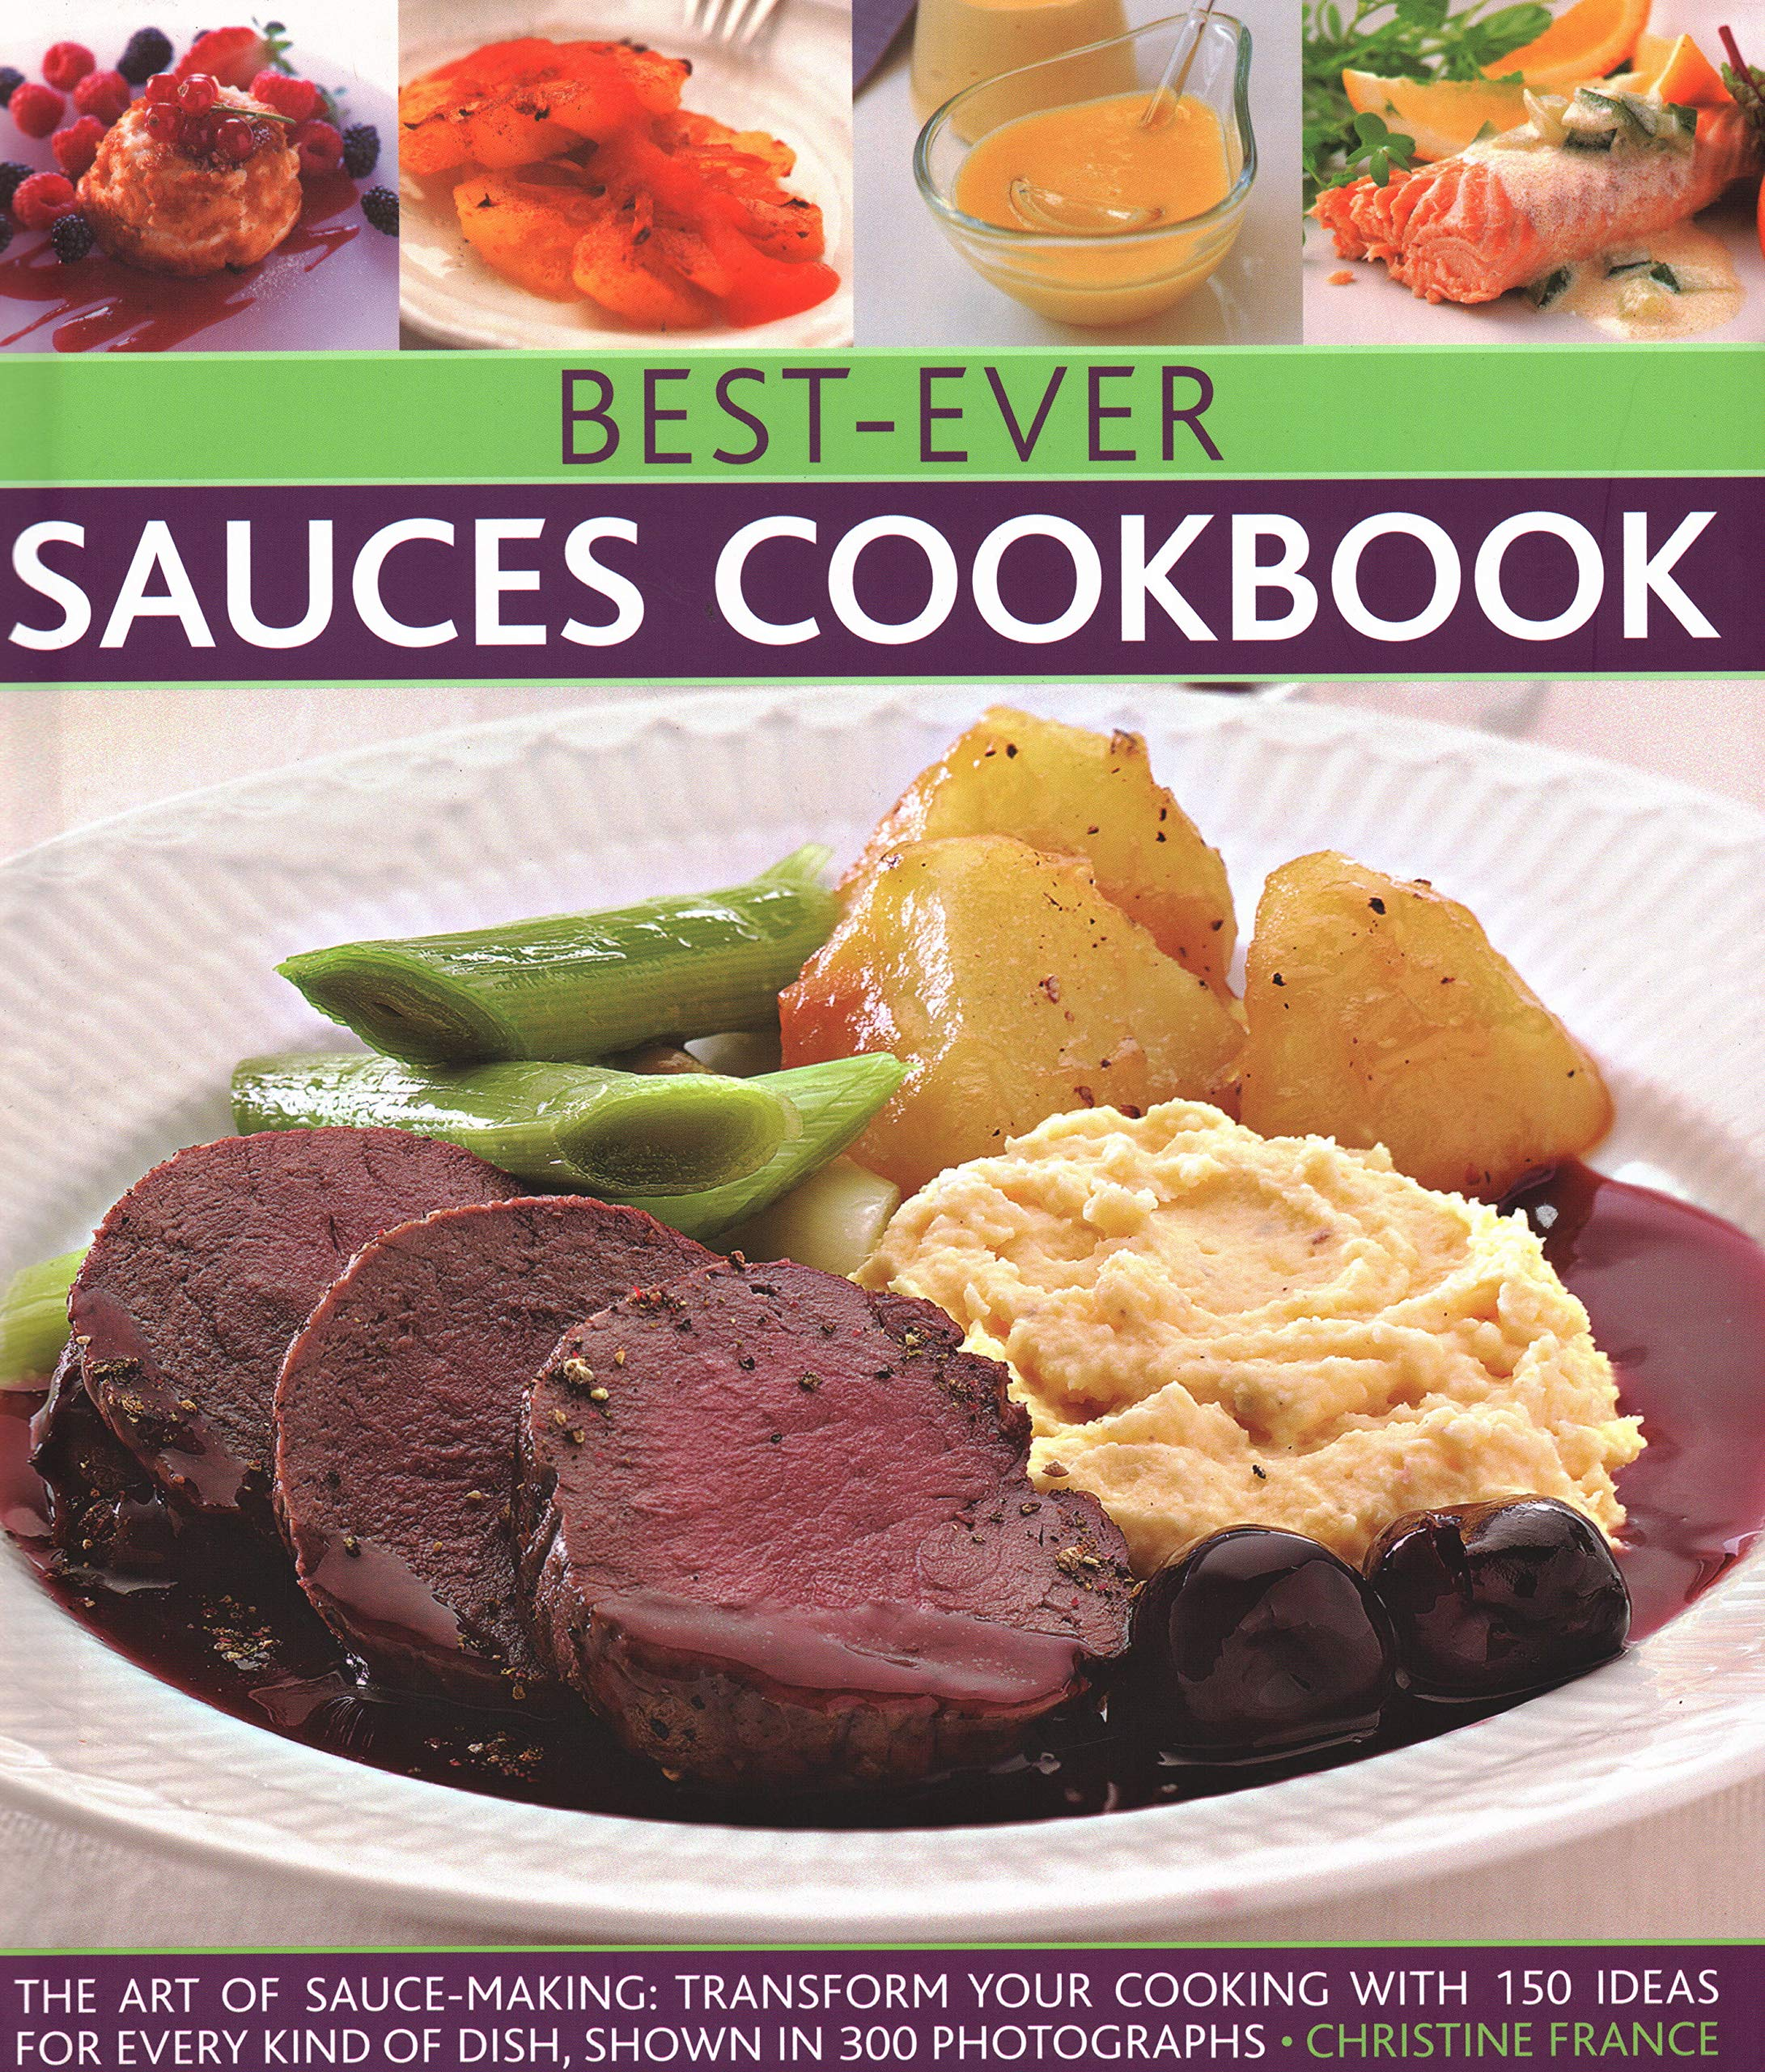 Download Best-Ever Sauces Cookbook: The Art Of Sauce Making: Transform Your Cooking With 150 Ideas For Every Kind Of Dish, Shown In 300 Photographs pdf